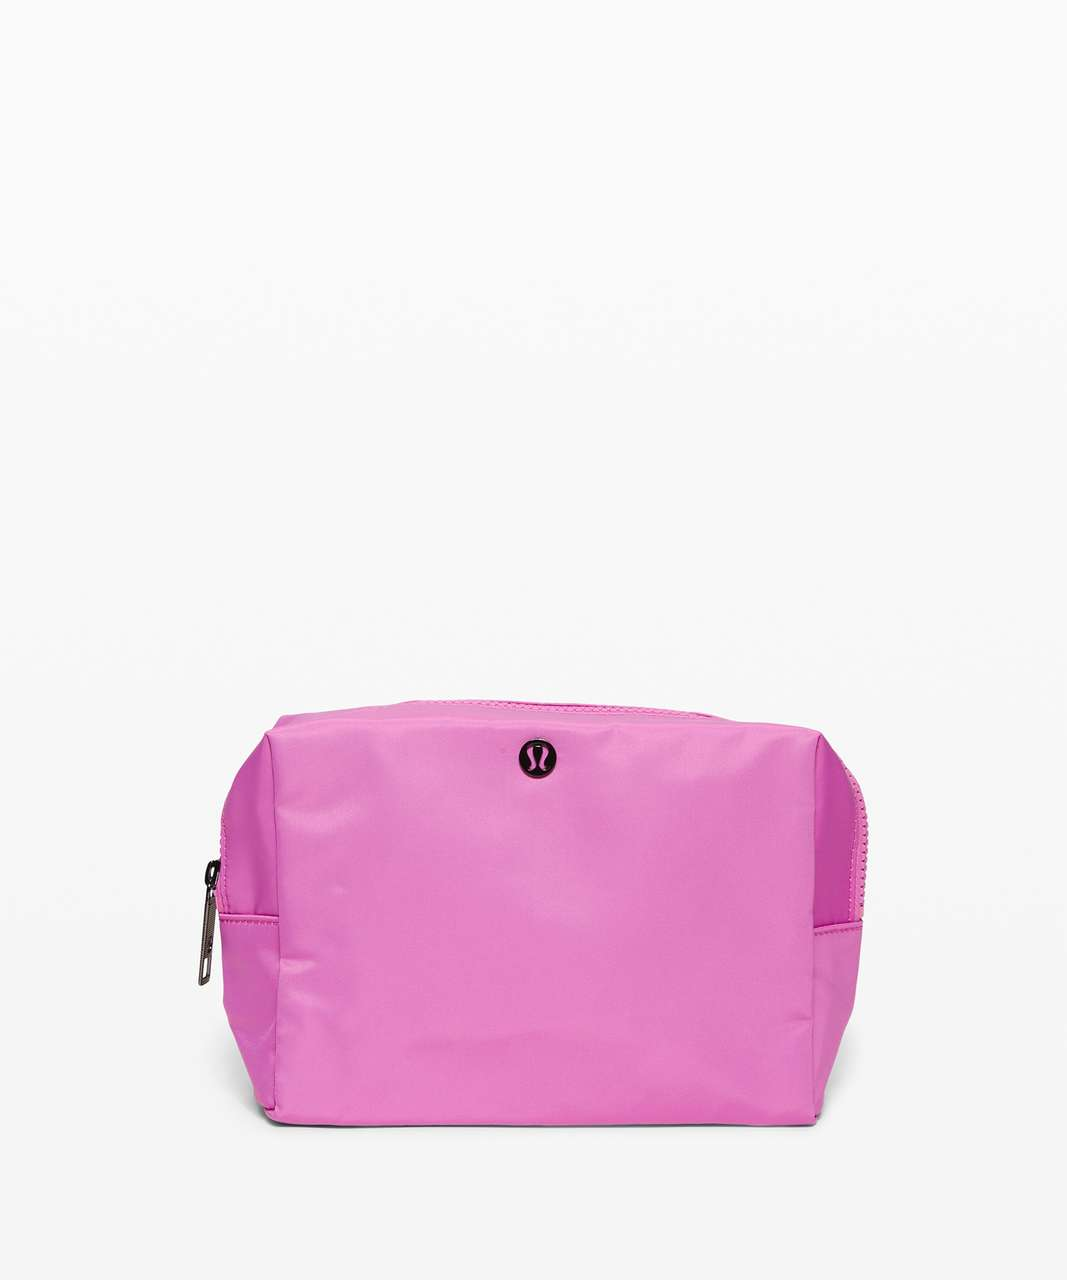 Lululemon All Your Small Things Pouch *4L - Magenta Glow